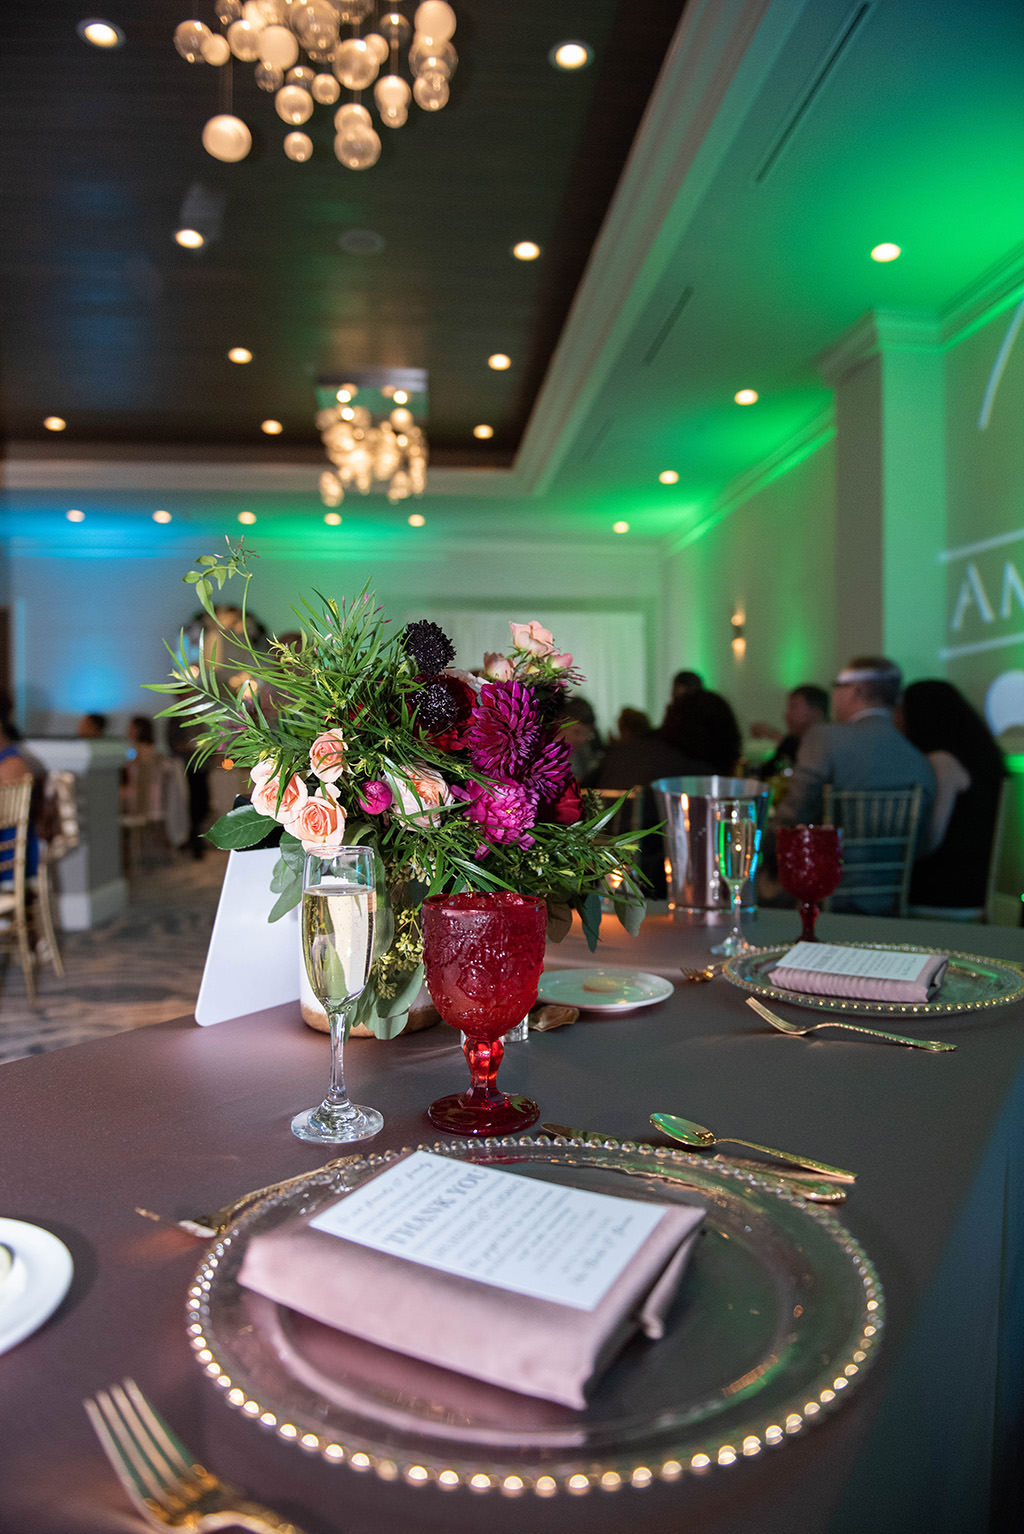 Tampa Classic Elegant Wedding Reception Decor, Clear Glass and Gold Bead Rimmed Charger Plates, Blush Pink Linen, Blush Pink, Purple, and Greenery Floral Centerpiece, Green Uplighting | Custom Tampa Wedding Uplighting by Gabro Event Services